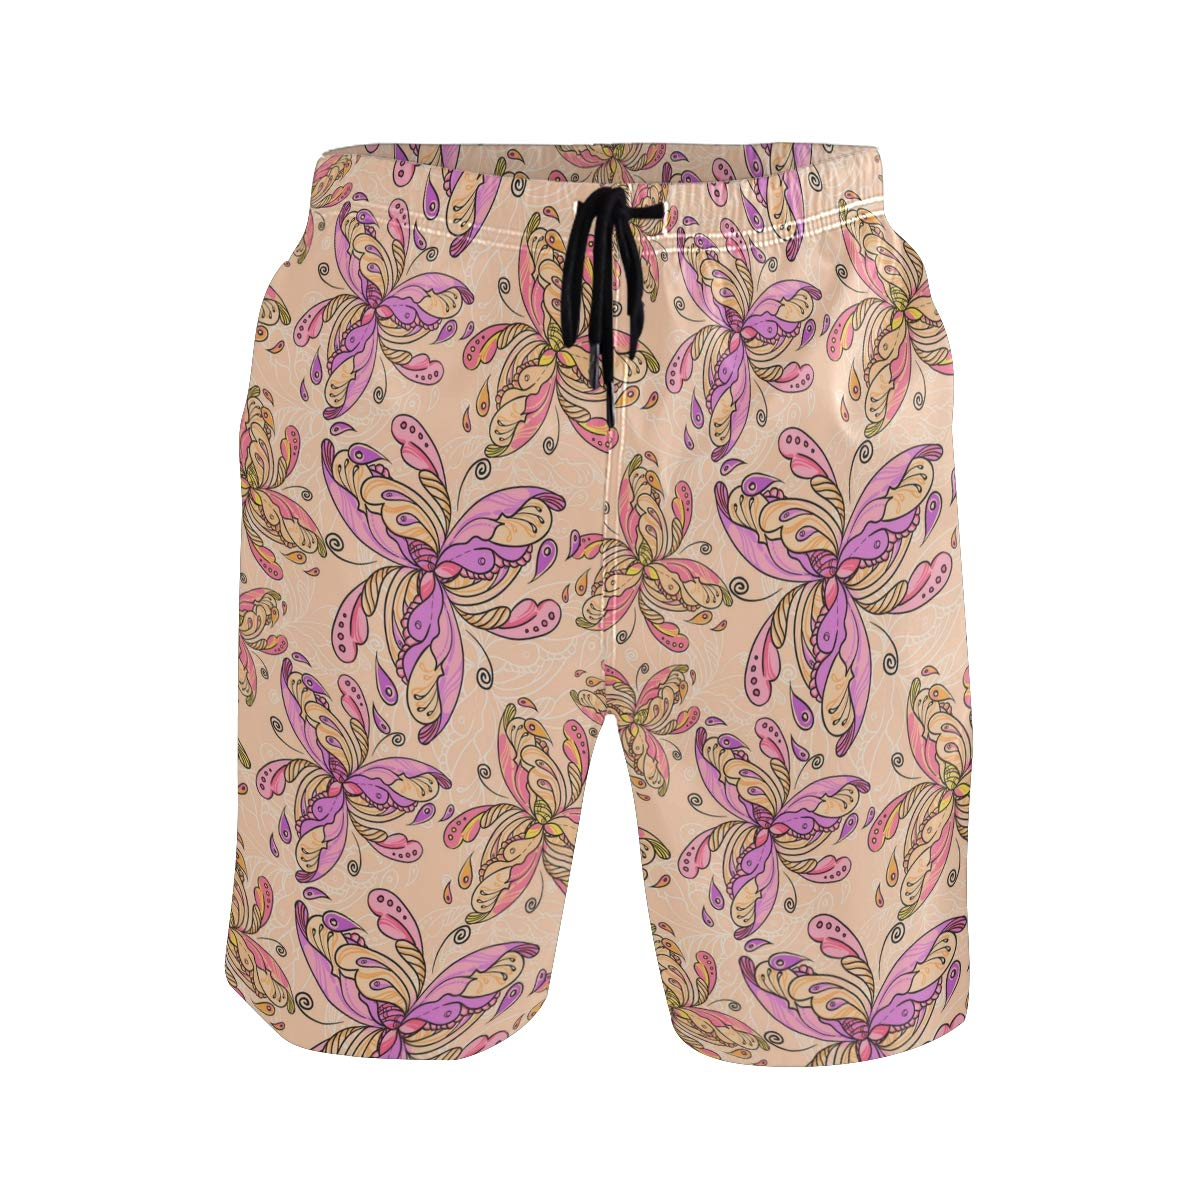 KVMV Abstract Flowers with Pink and White Dots Swirls Little Quick Dry Beach Shorts